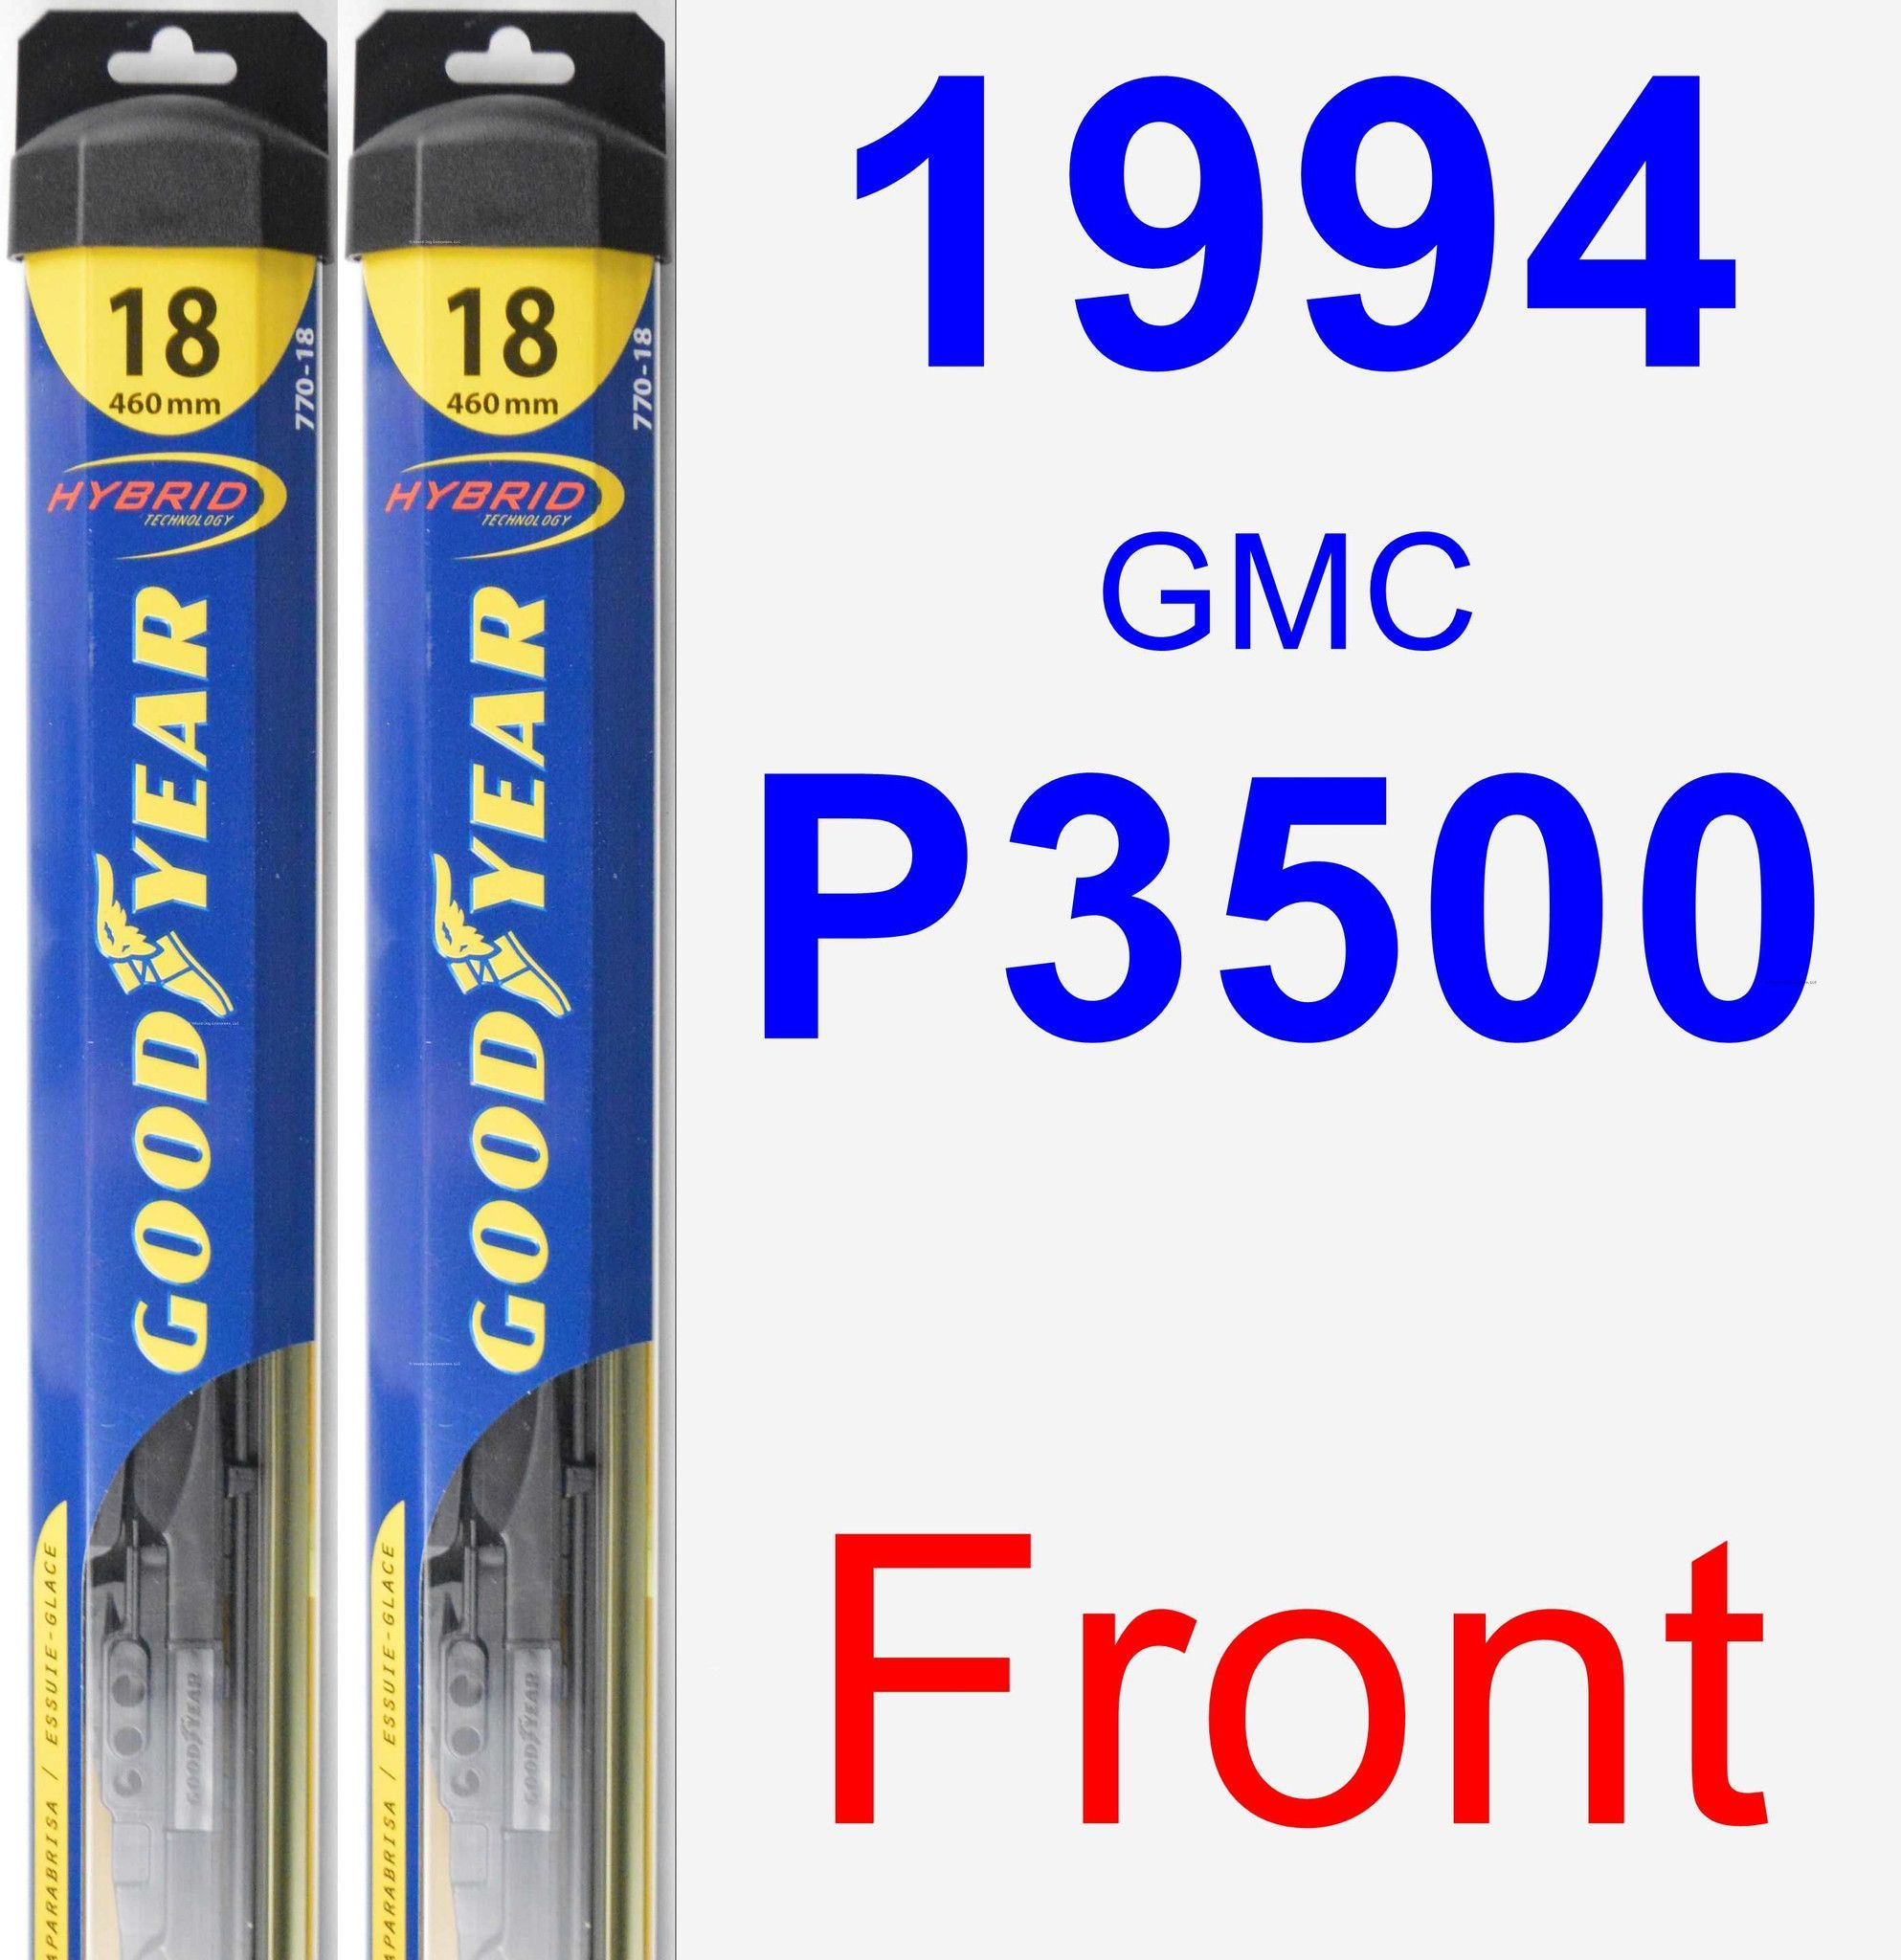 Front wiper blade pack for 1994 gmc p3500 hybrid